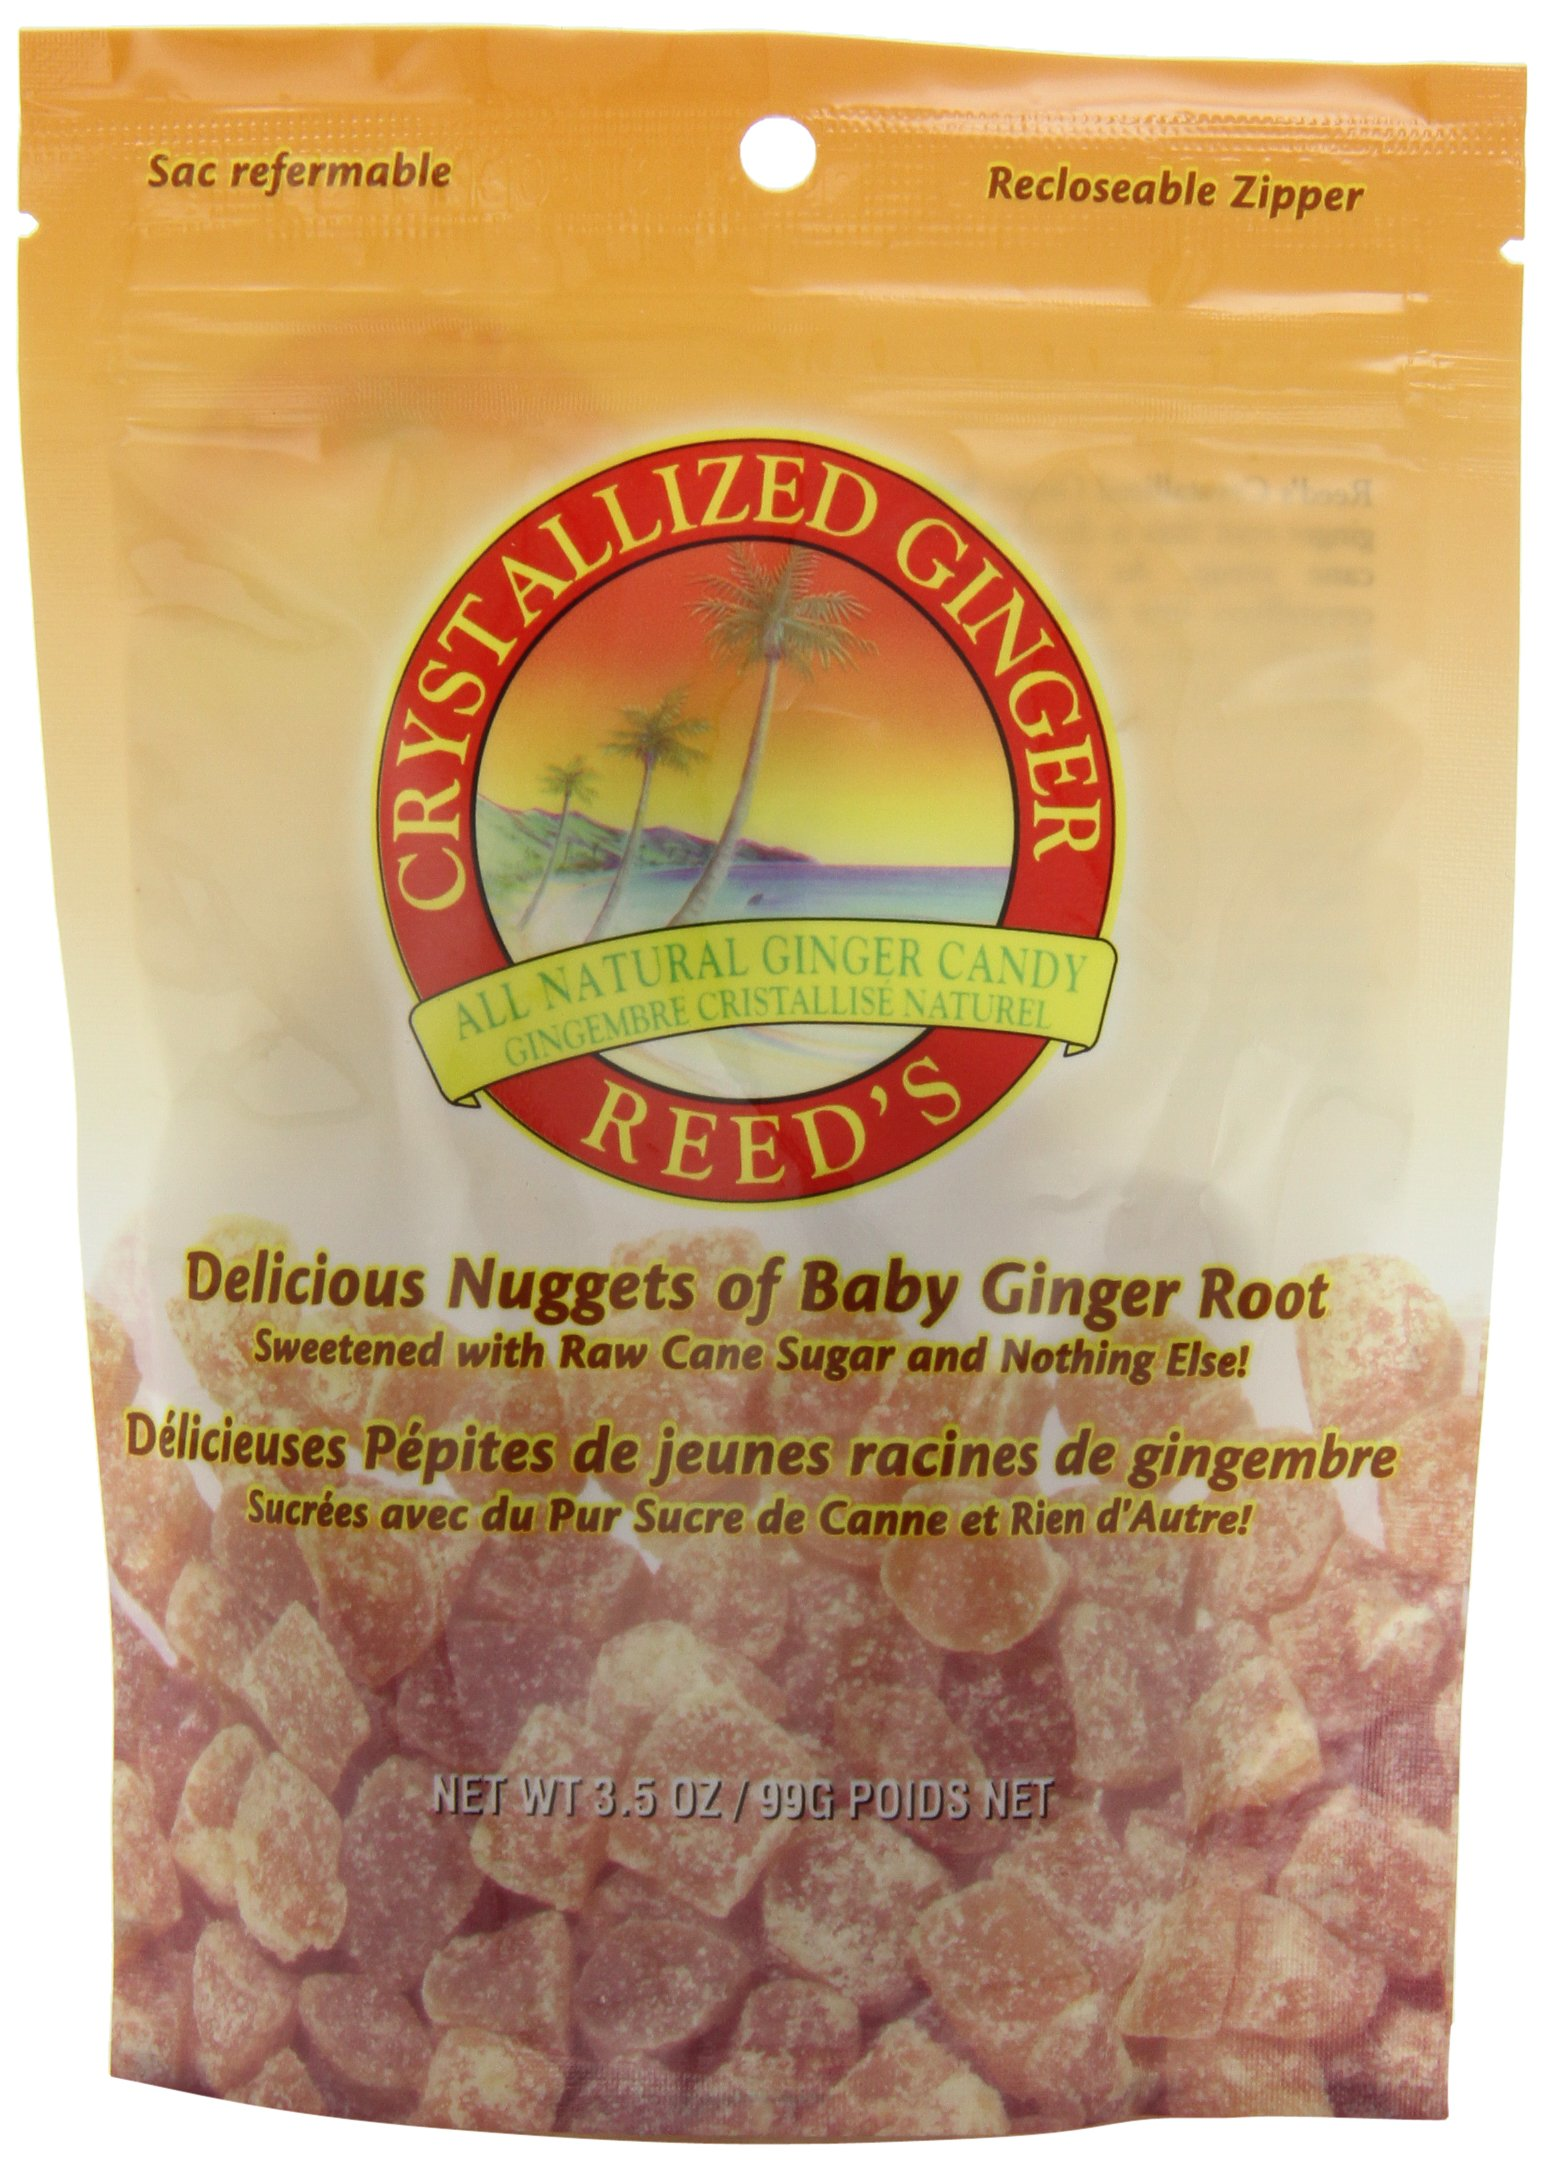 Reed's Crystallized Ginger Candy, 3.5 Ounce (Pack of 12) by Reeds